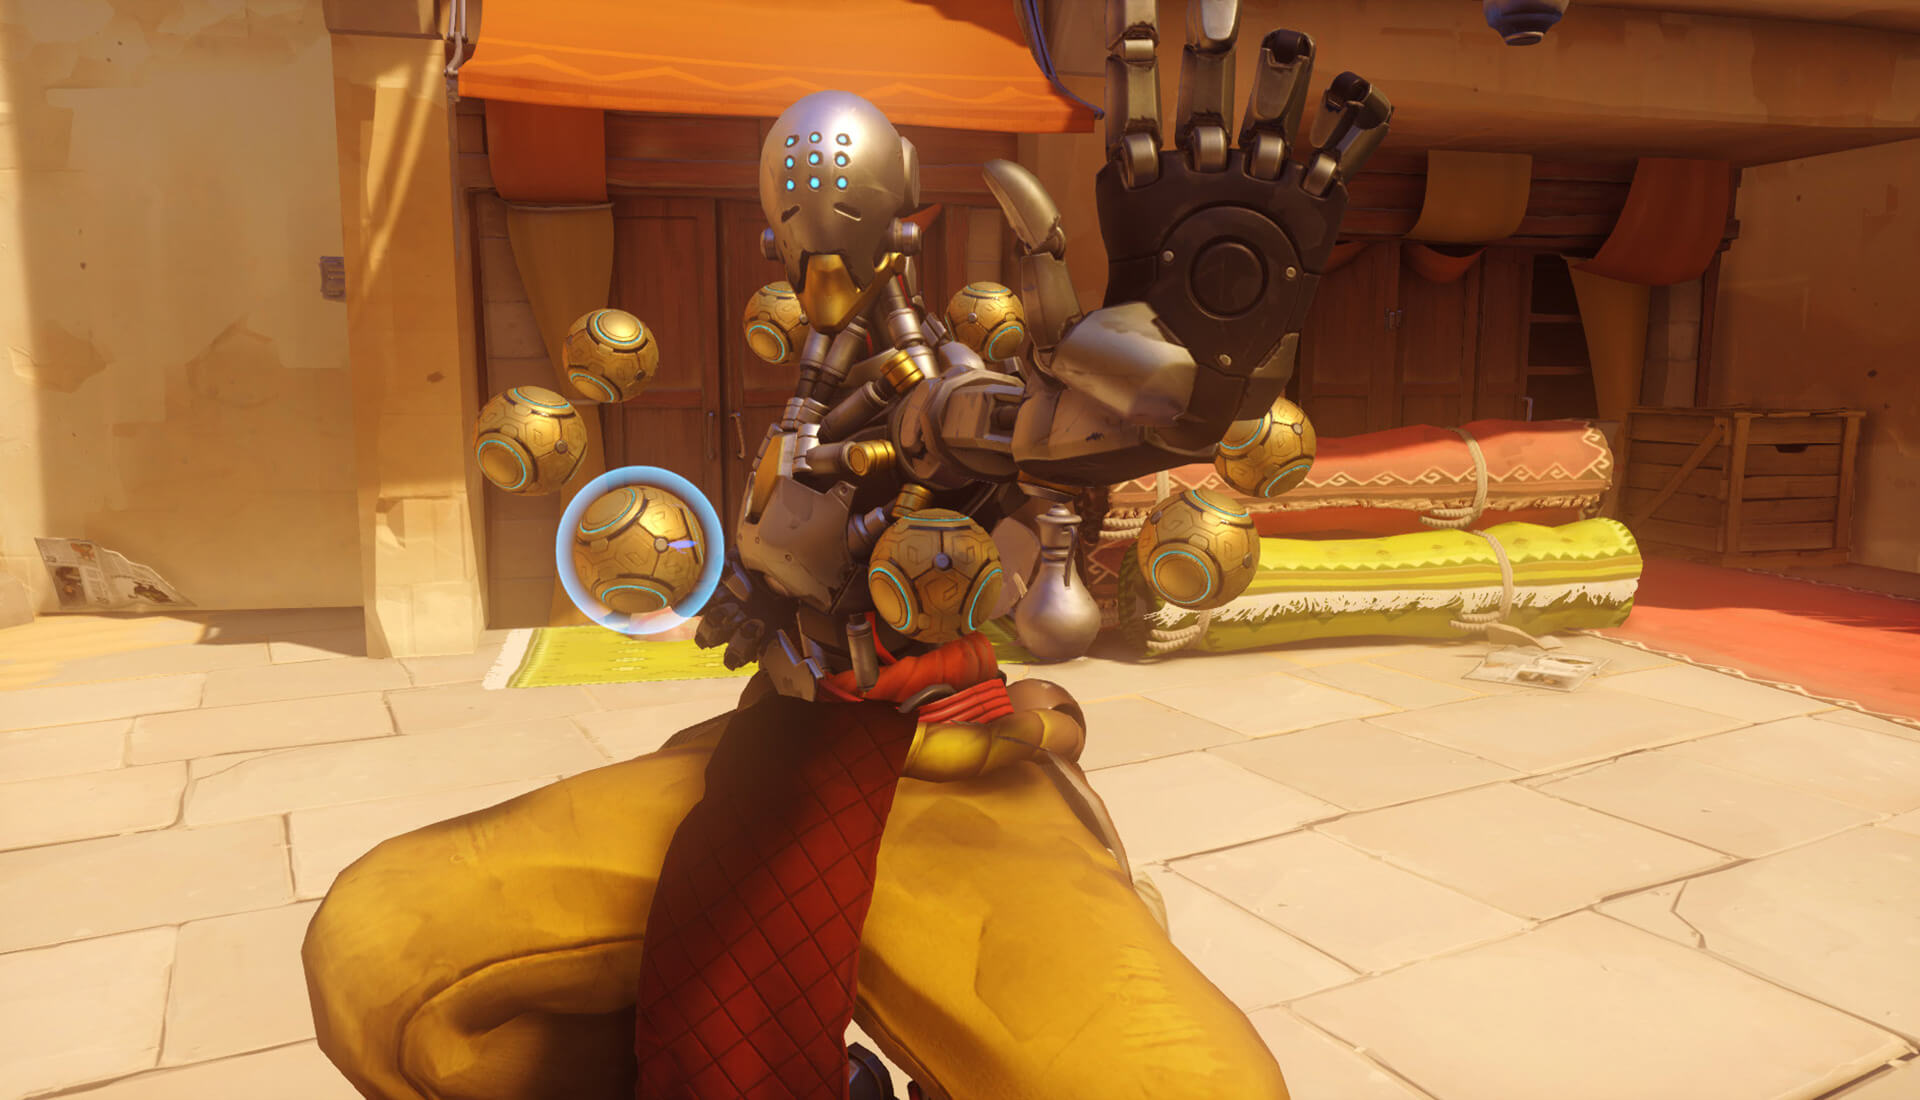 Zenyatta S Hero And Weapon Skins All Events Included Esports Tales